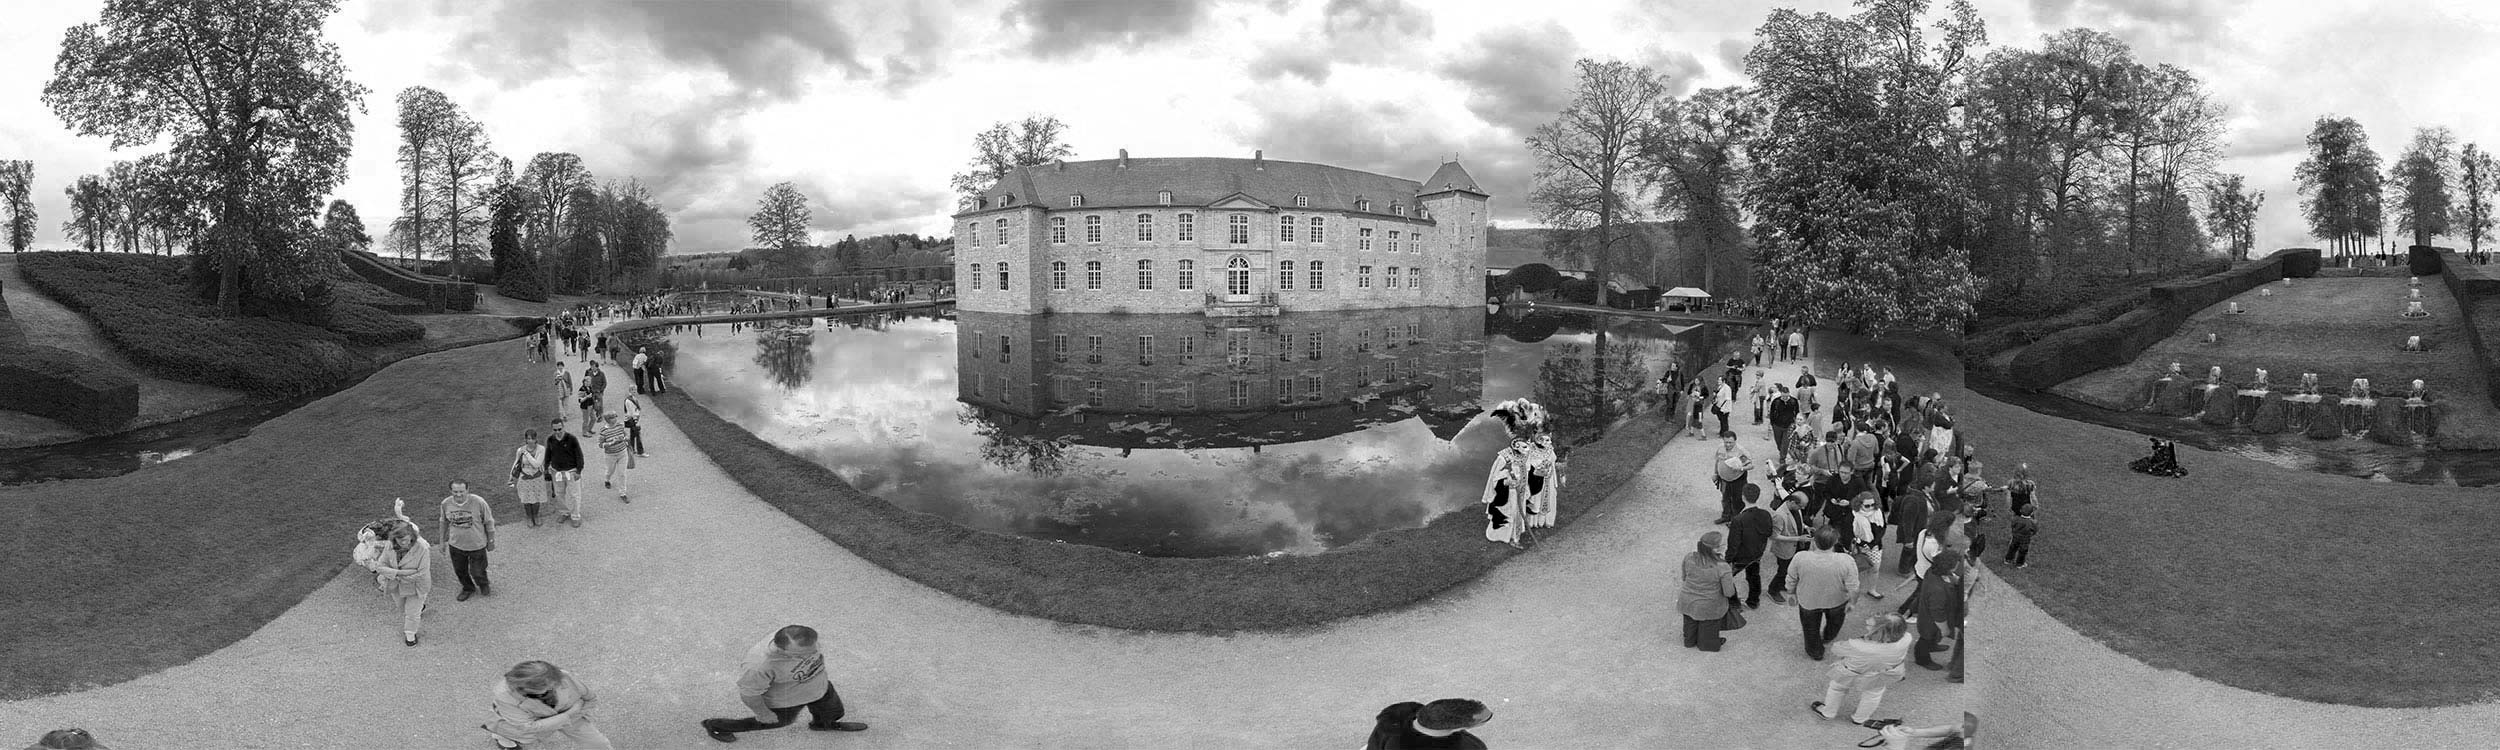 Jardin annevoie visite virtuelle 360 carnaval hainaut black and white